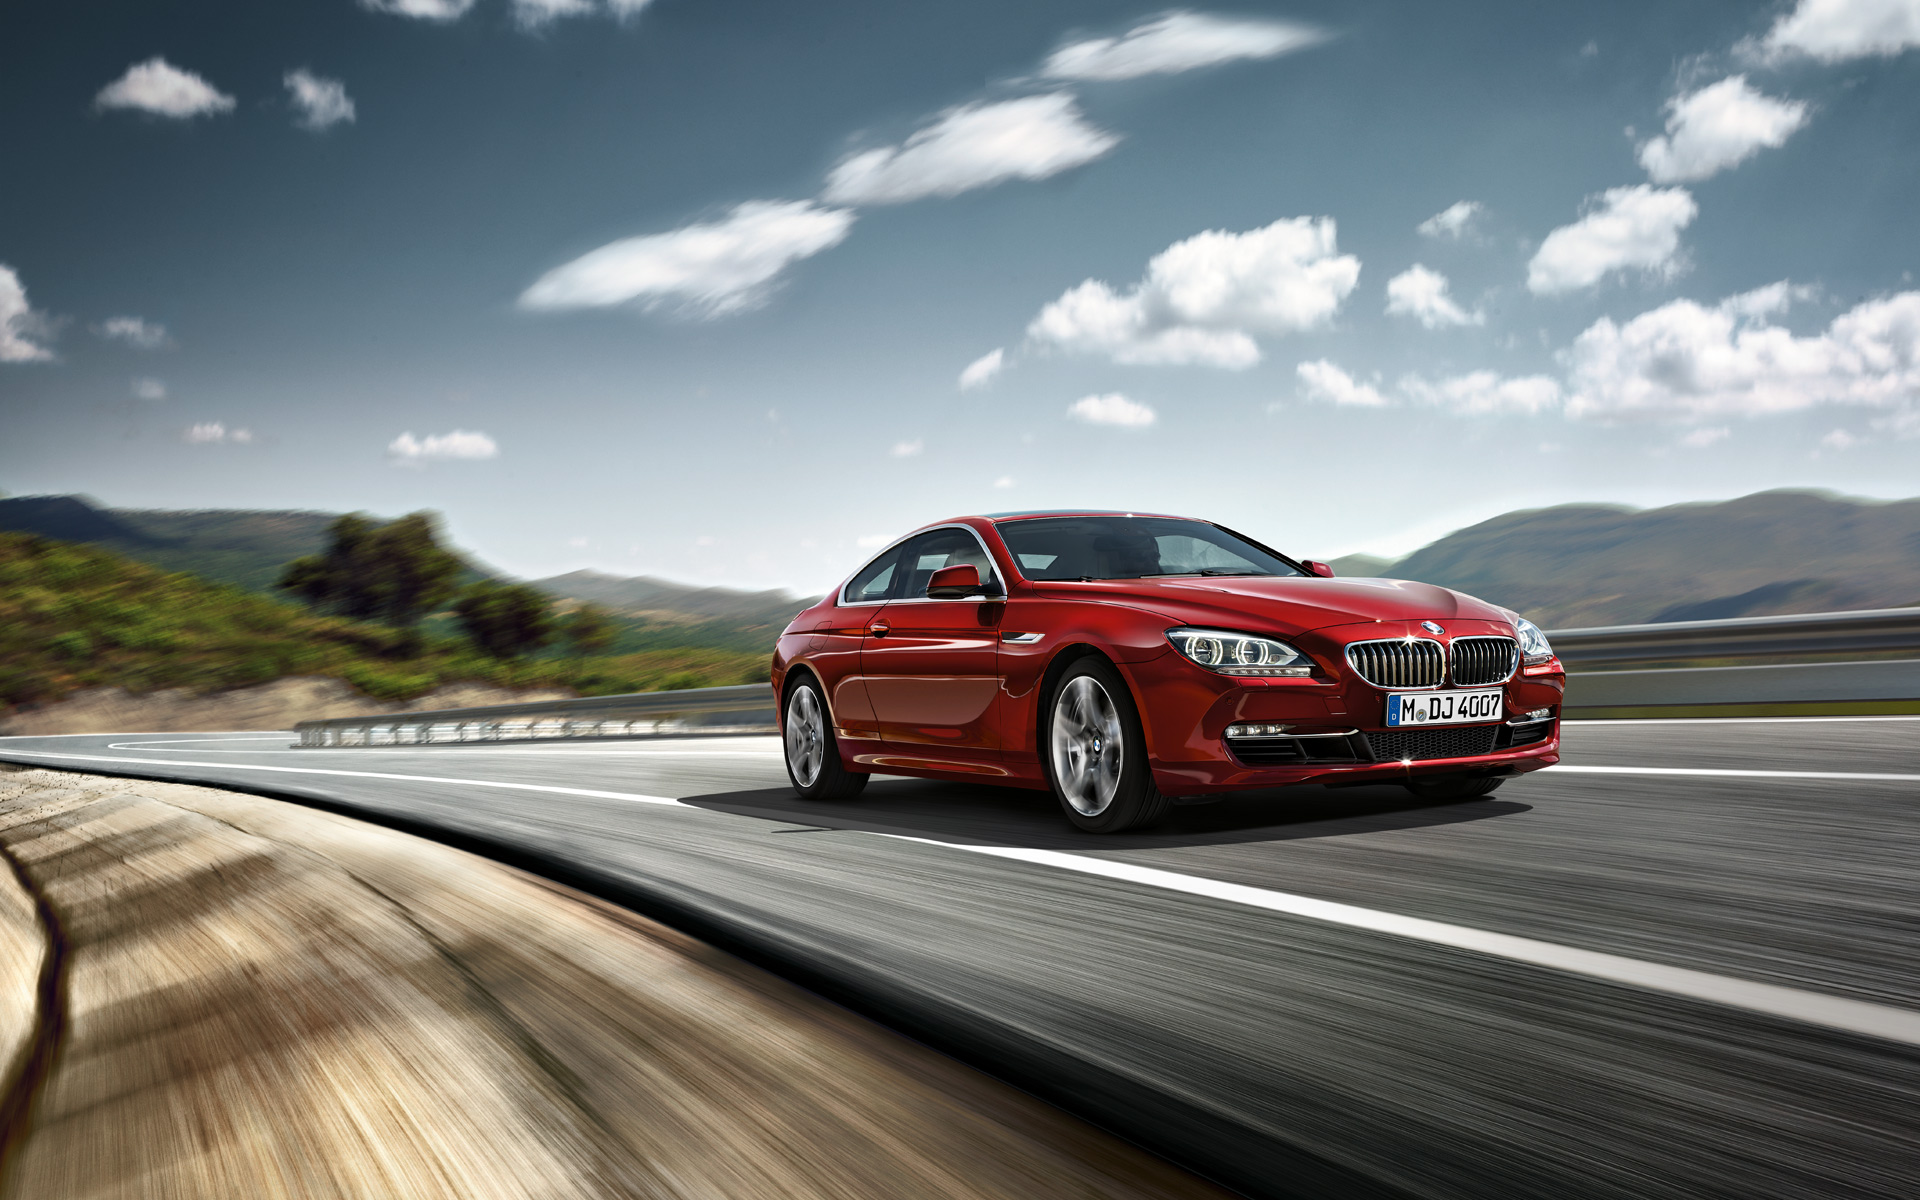 red bmw 6 series wallpaper hd 43417